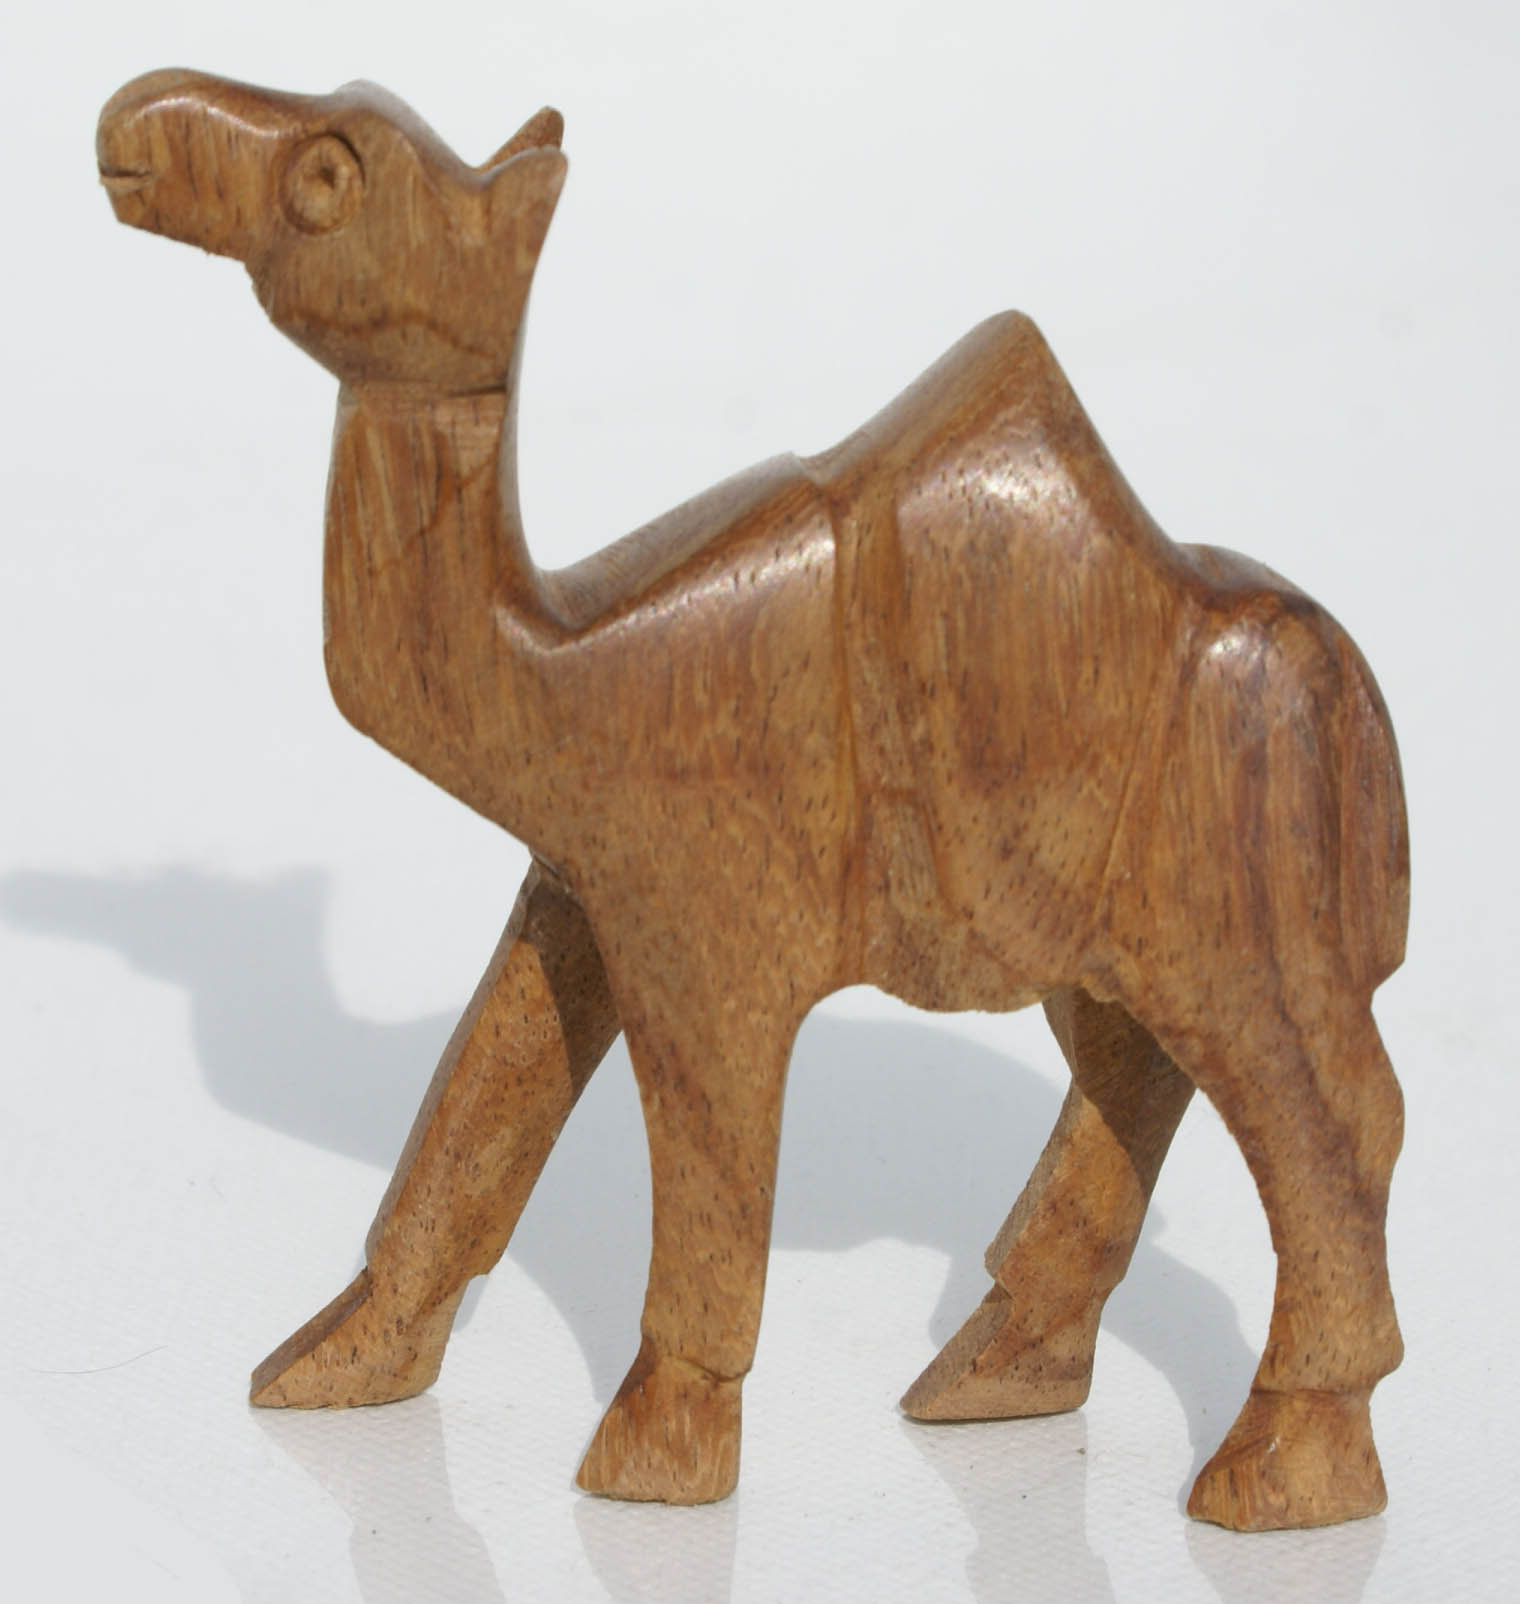 Wooden Camel Statue Handcrafted in Egypt Wood Carving Miniature Animal  Figurines Crafts